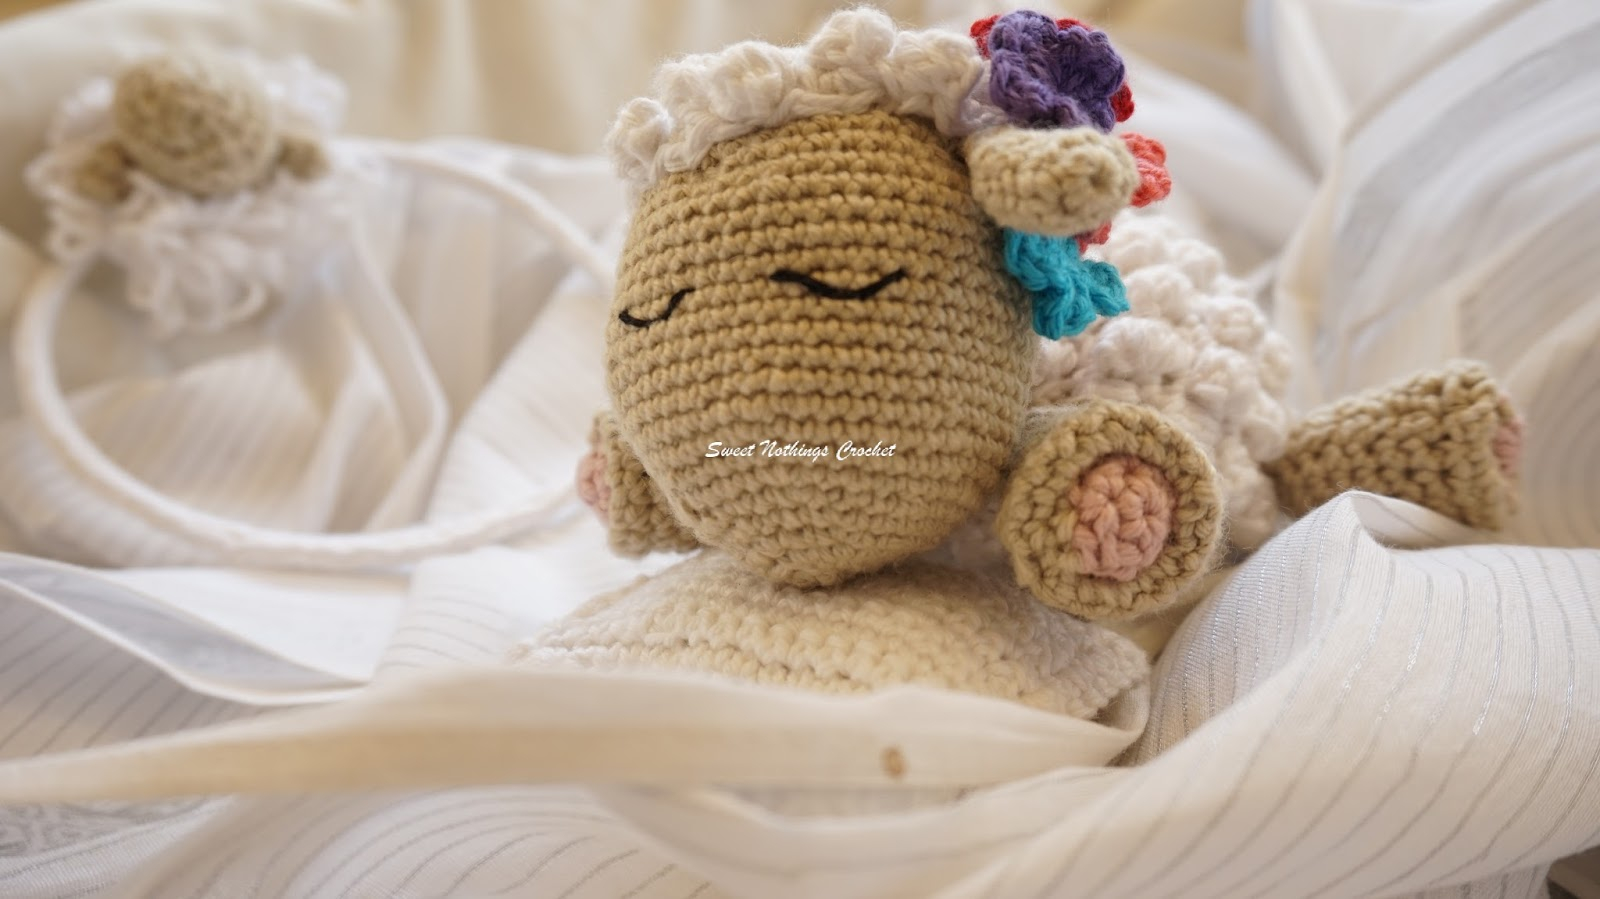 The Sweetest Crochet Lamb Patterns for Free Sweet Nothings Crochet Adorable Crochet Lamb Matching Headband